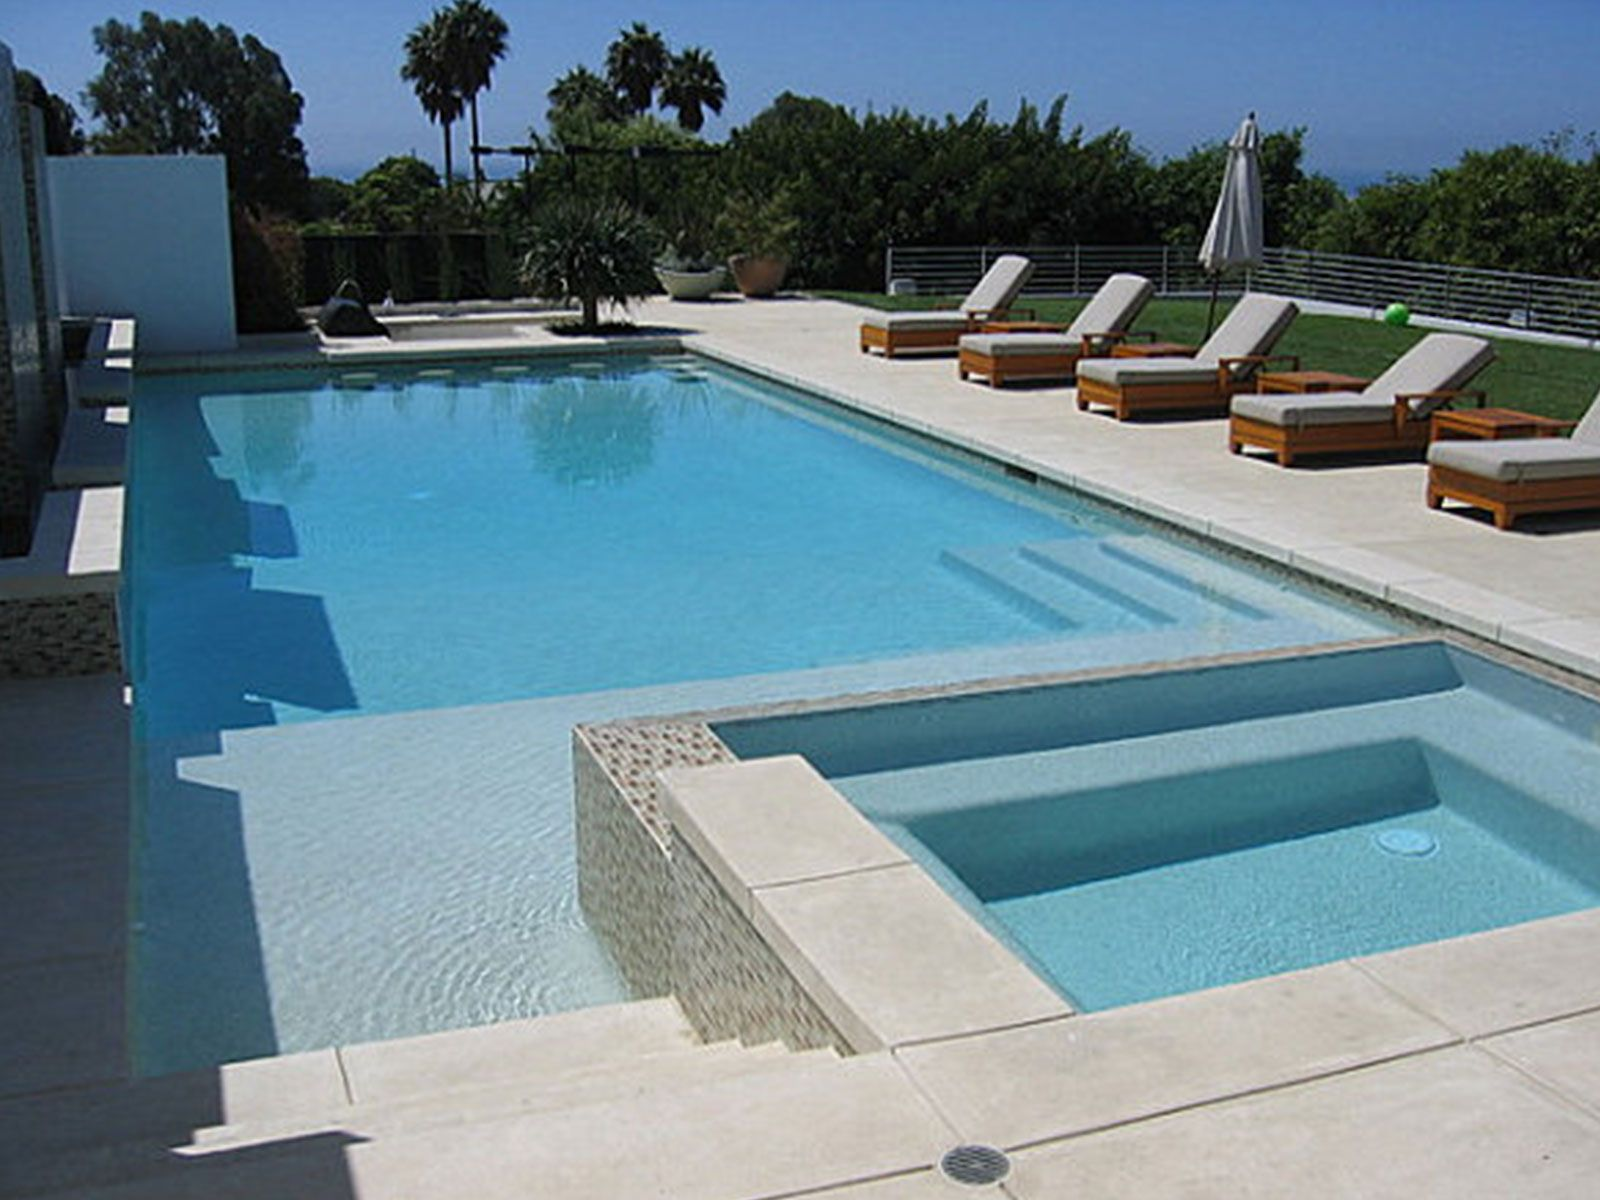 Simple swimming pool design image modern creative swimming for Poolside ideas